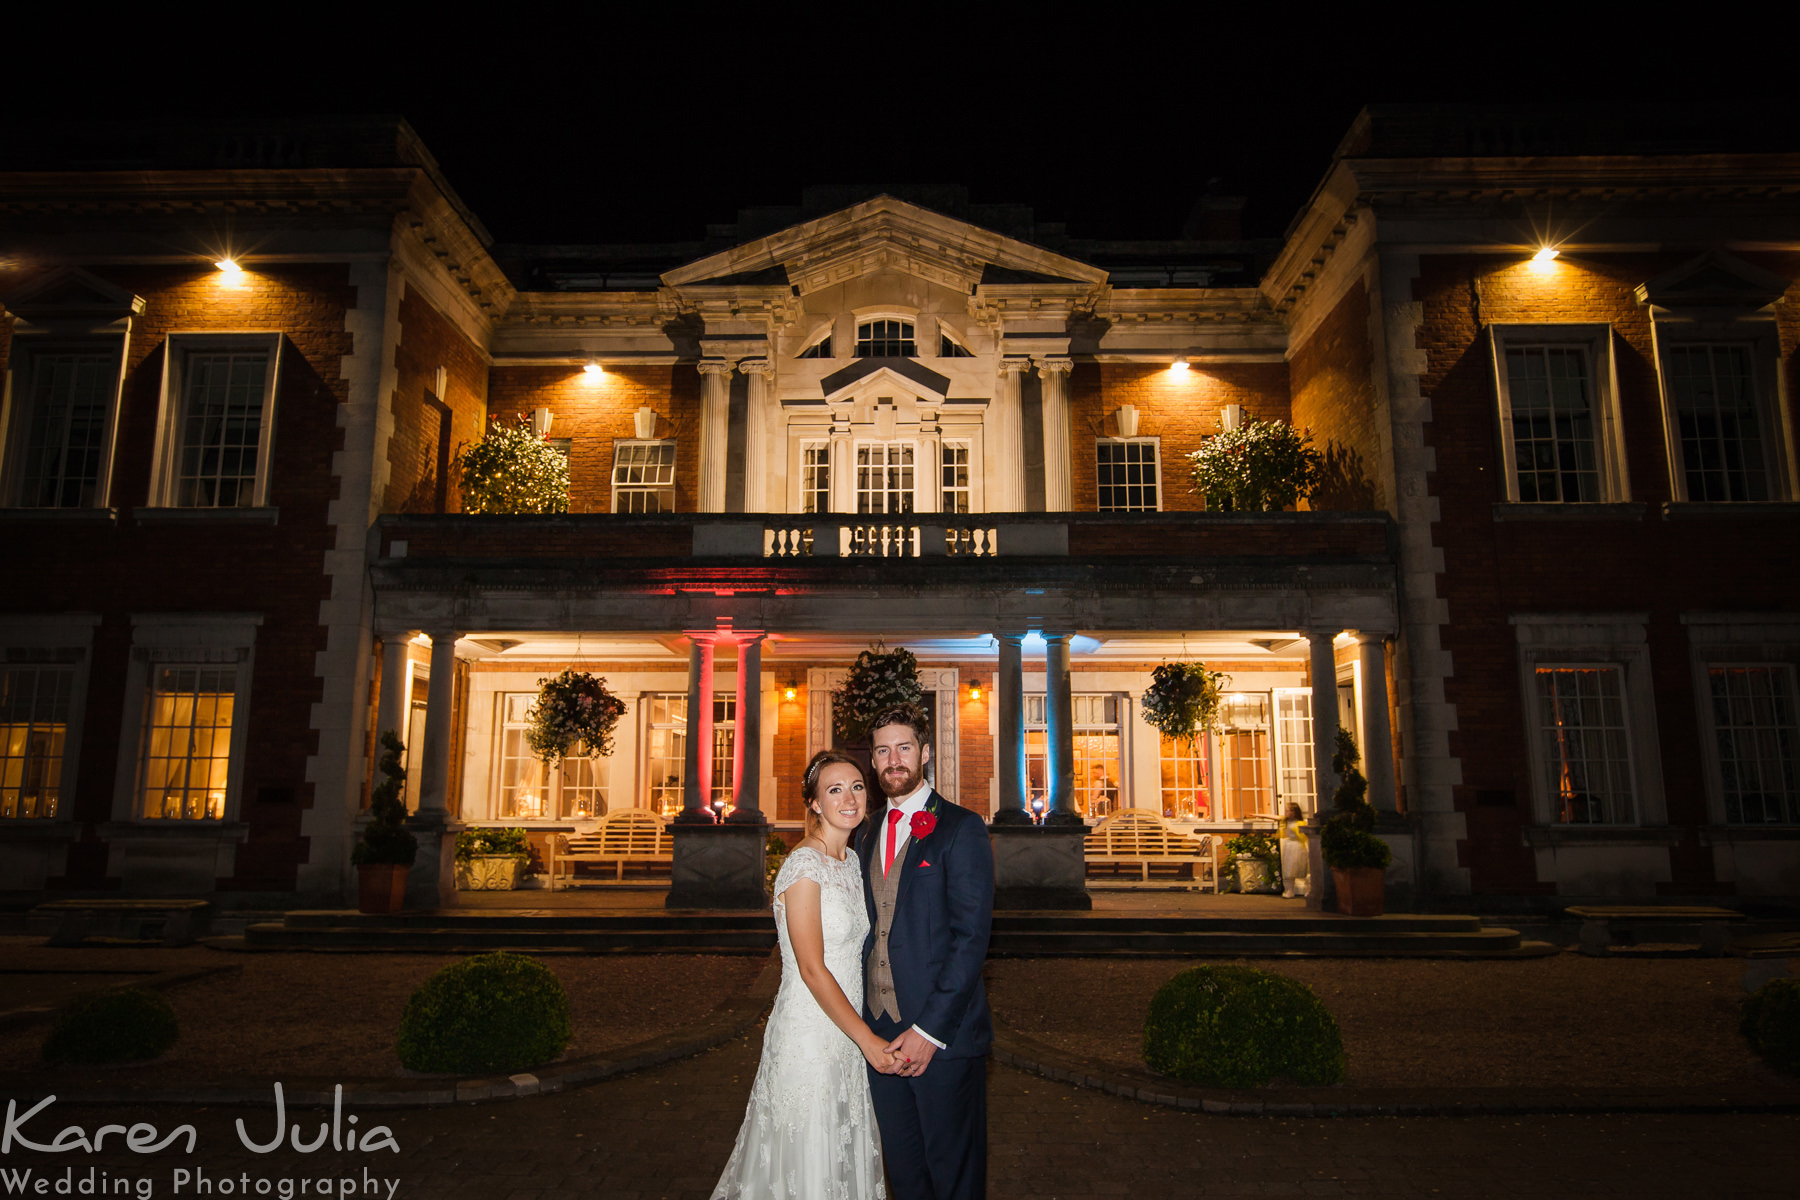 bride and groom portrait at night at Eaves Hall